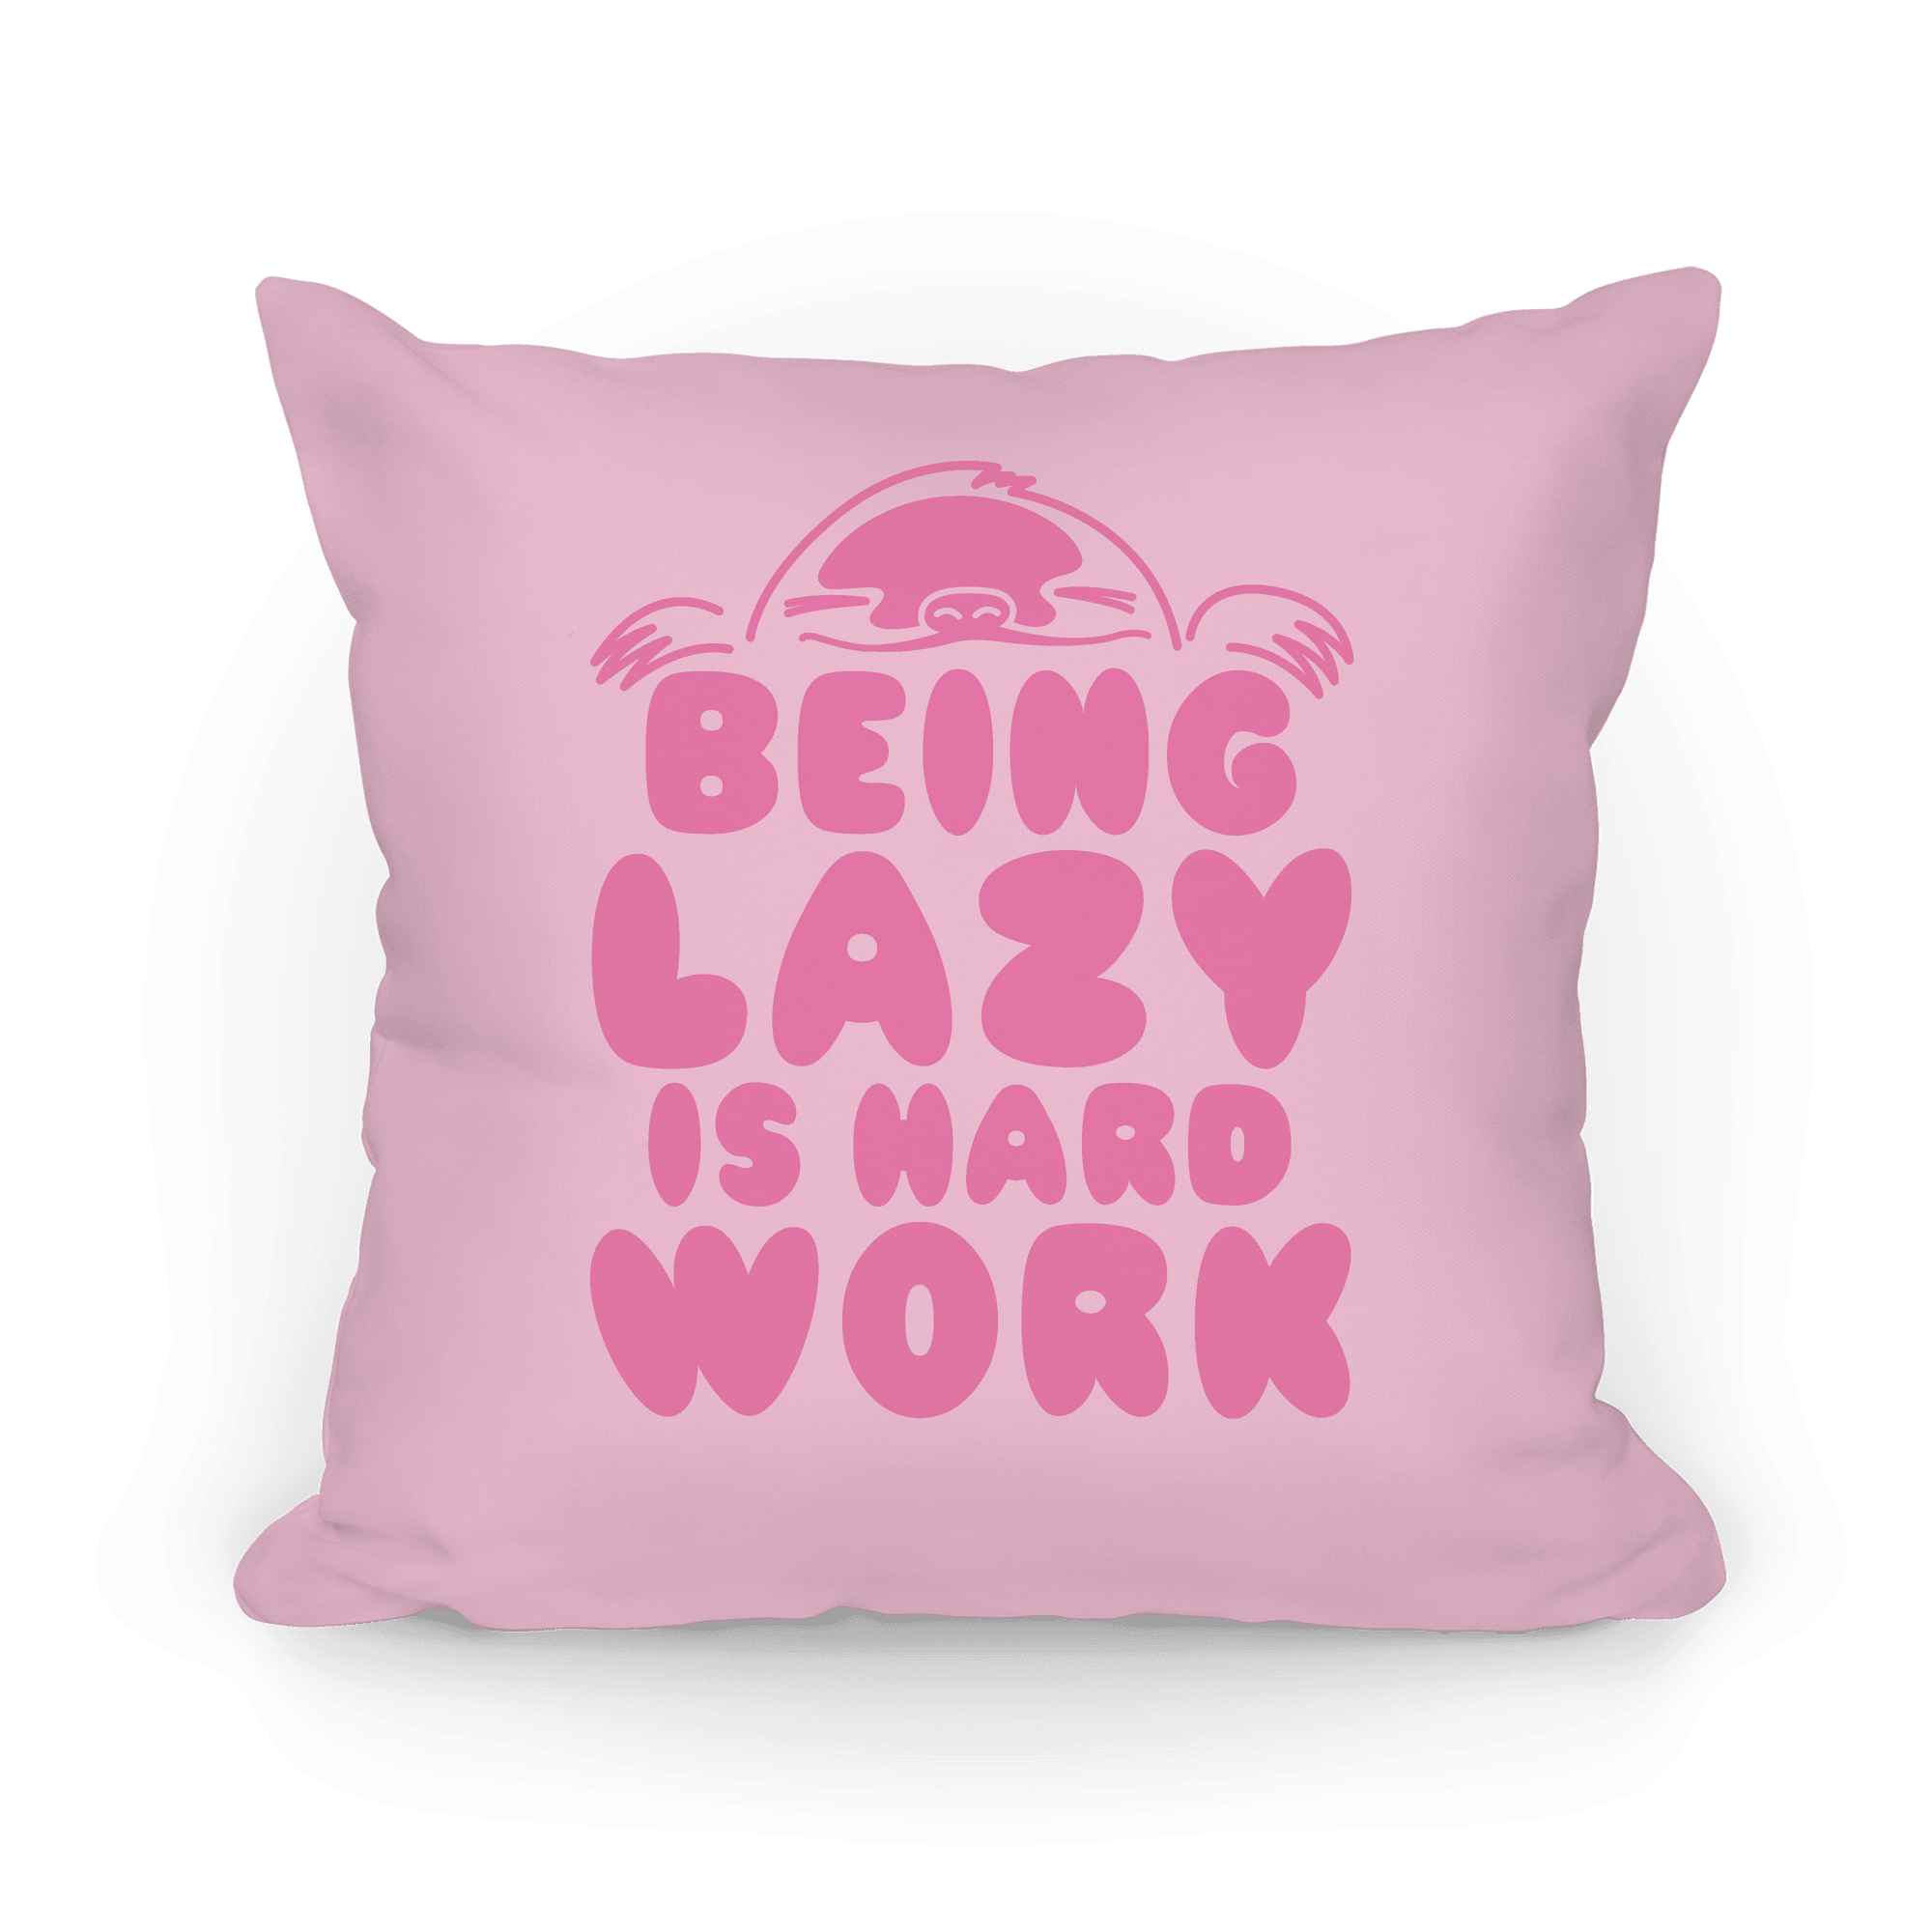 Being Lazy Is Hard Work Pillows Lookhuman